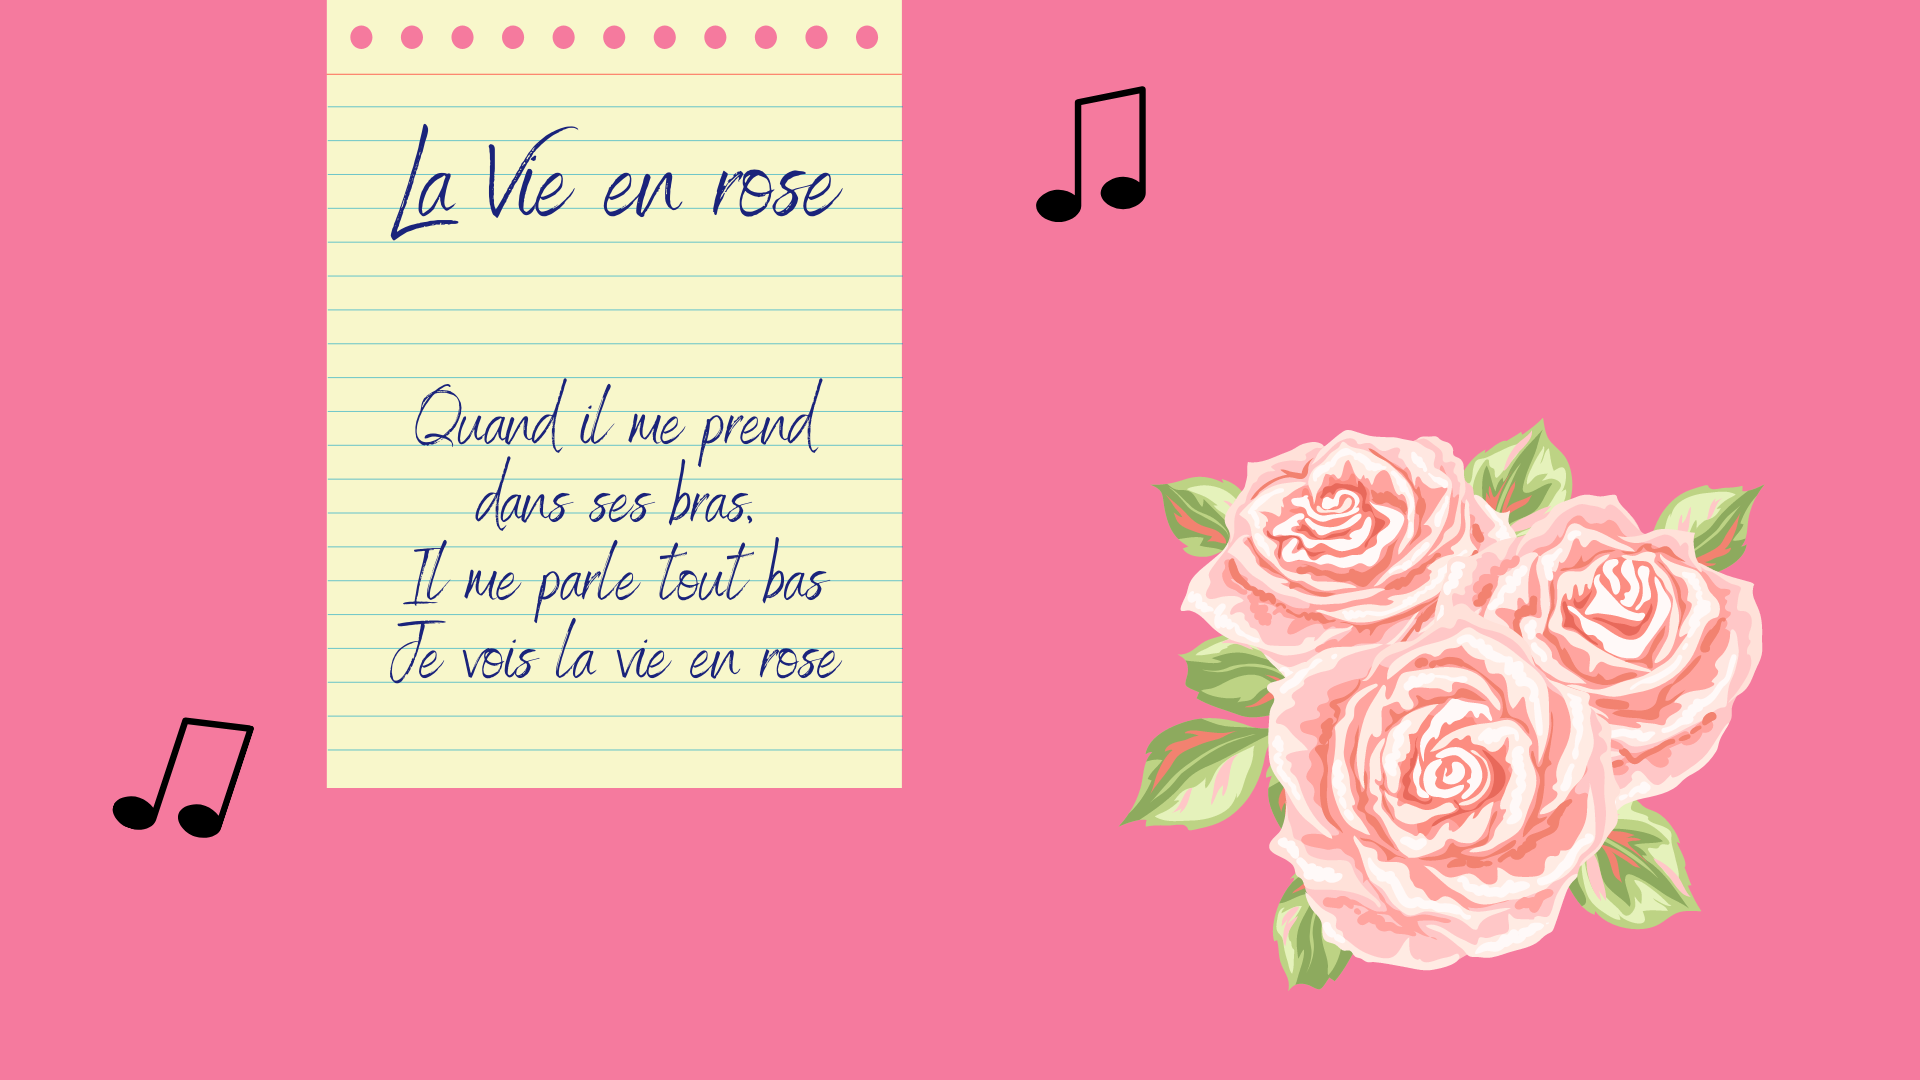 French La Vie en rose by Édith Piaf